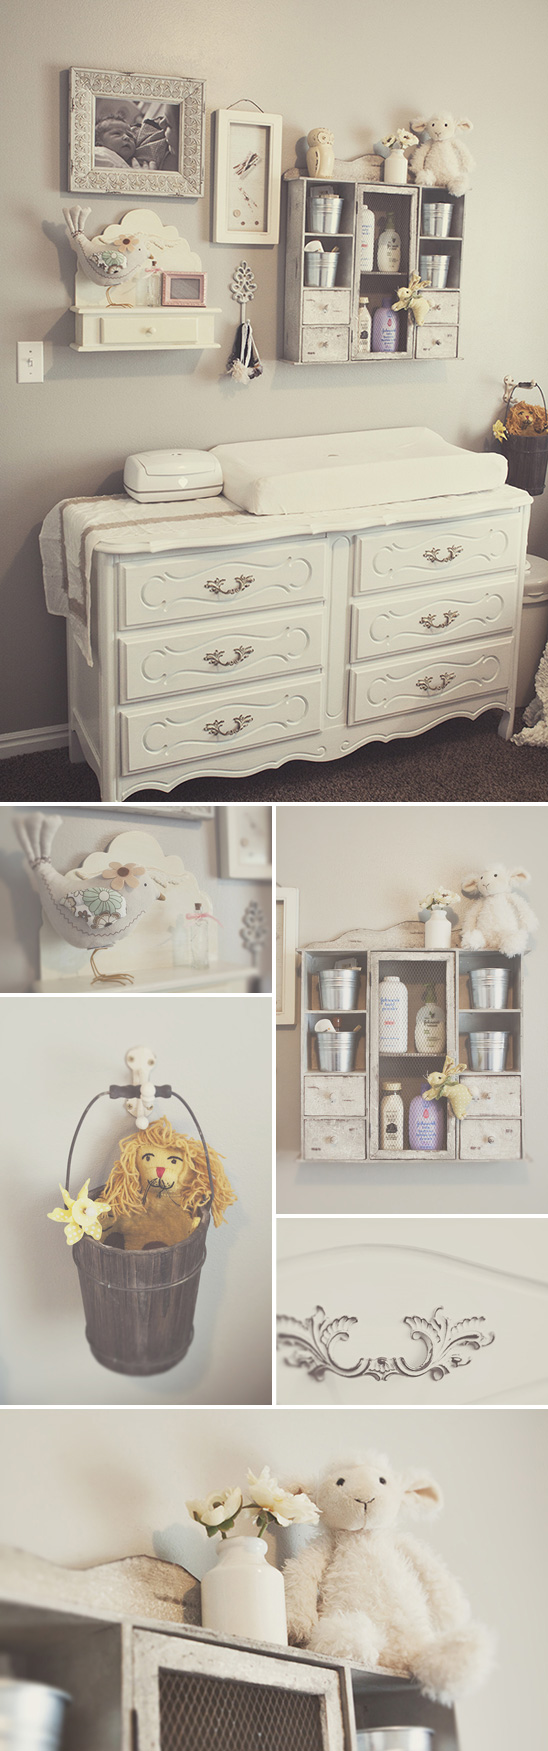 The vintage dresser is simply gorgeous